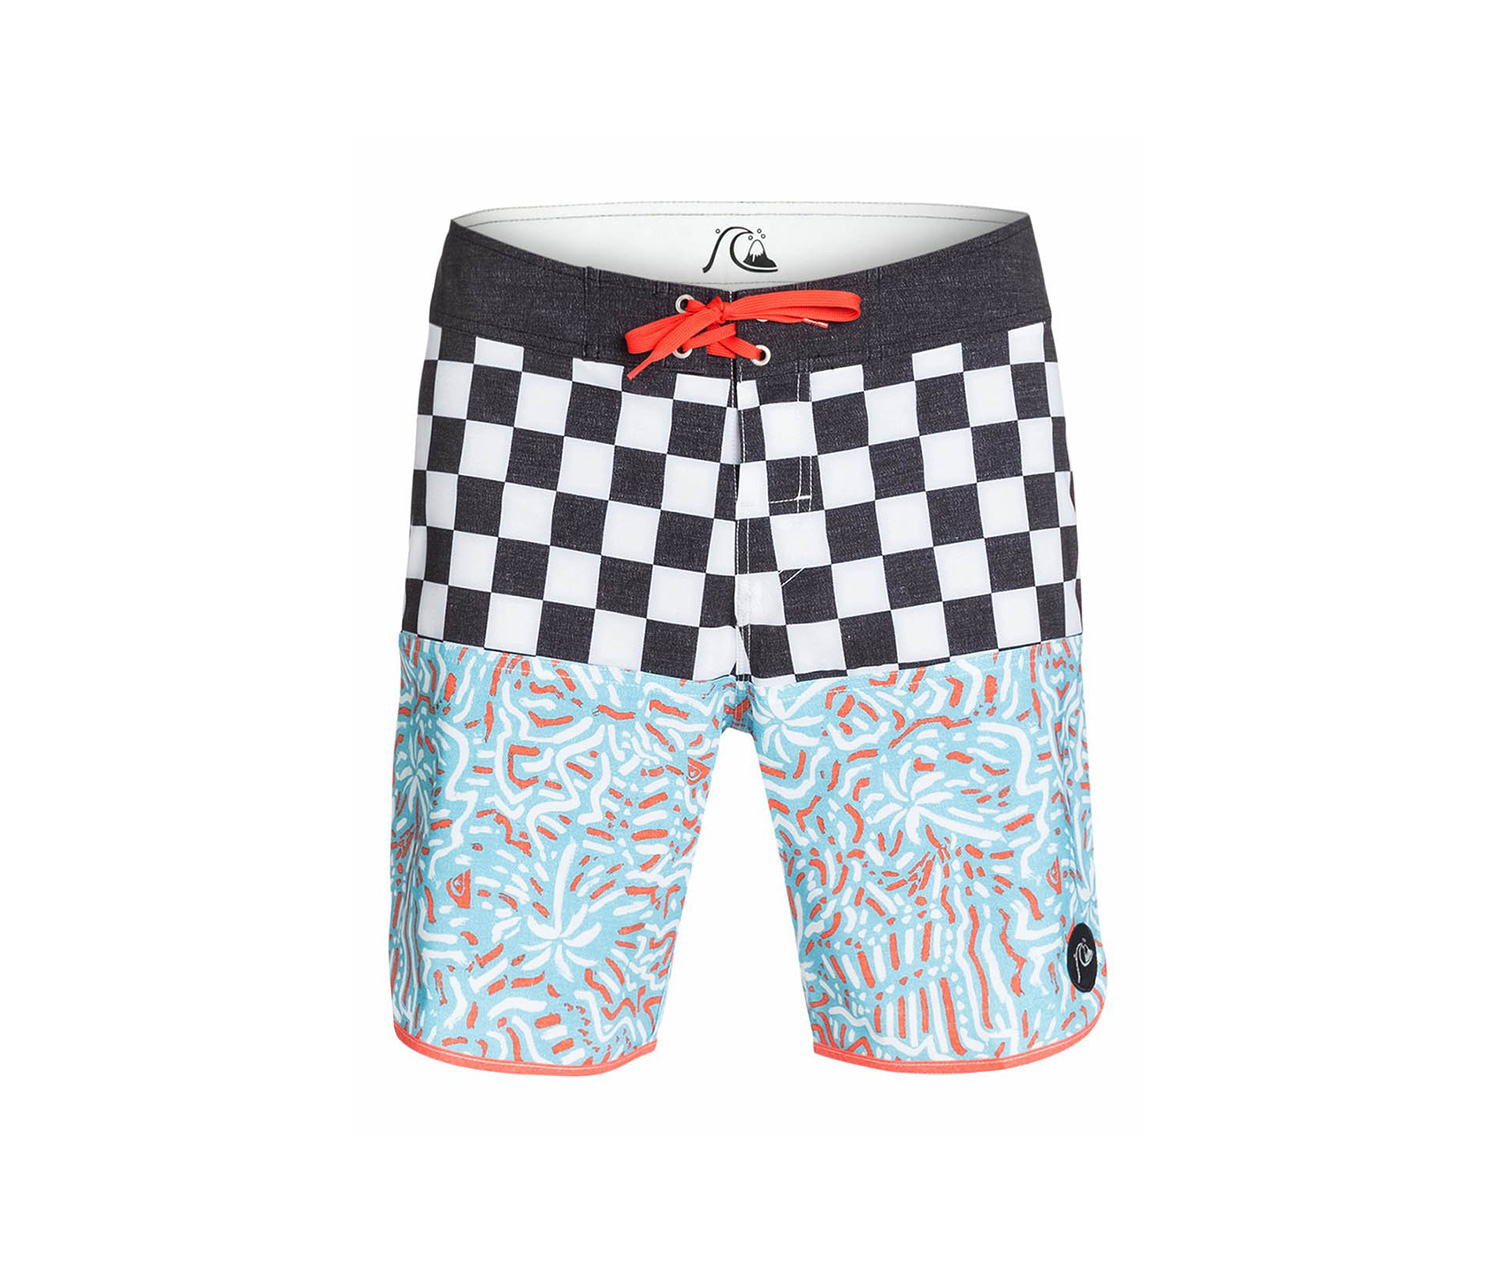 Quiksilver Men's Swim shorts, Black/Blue/Orange